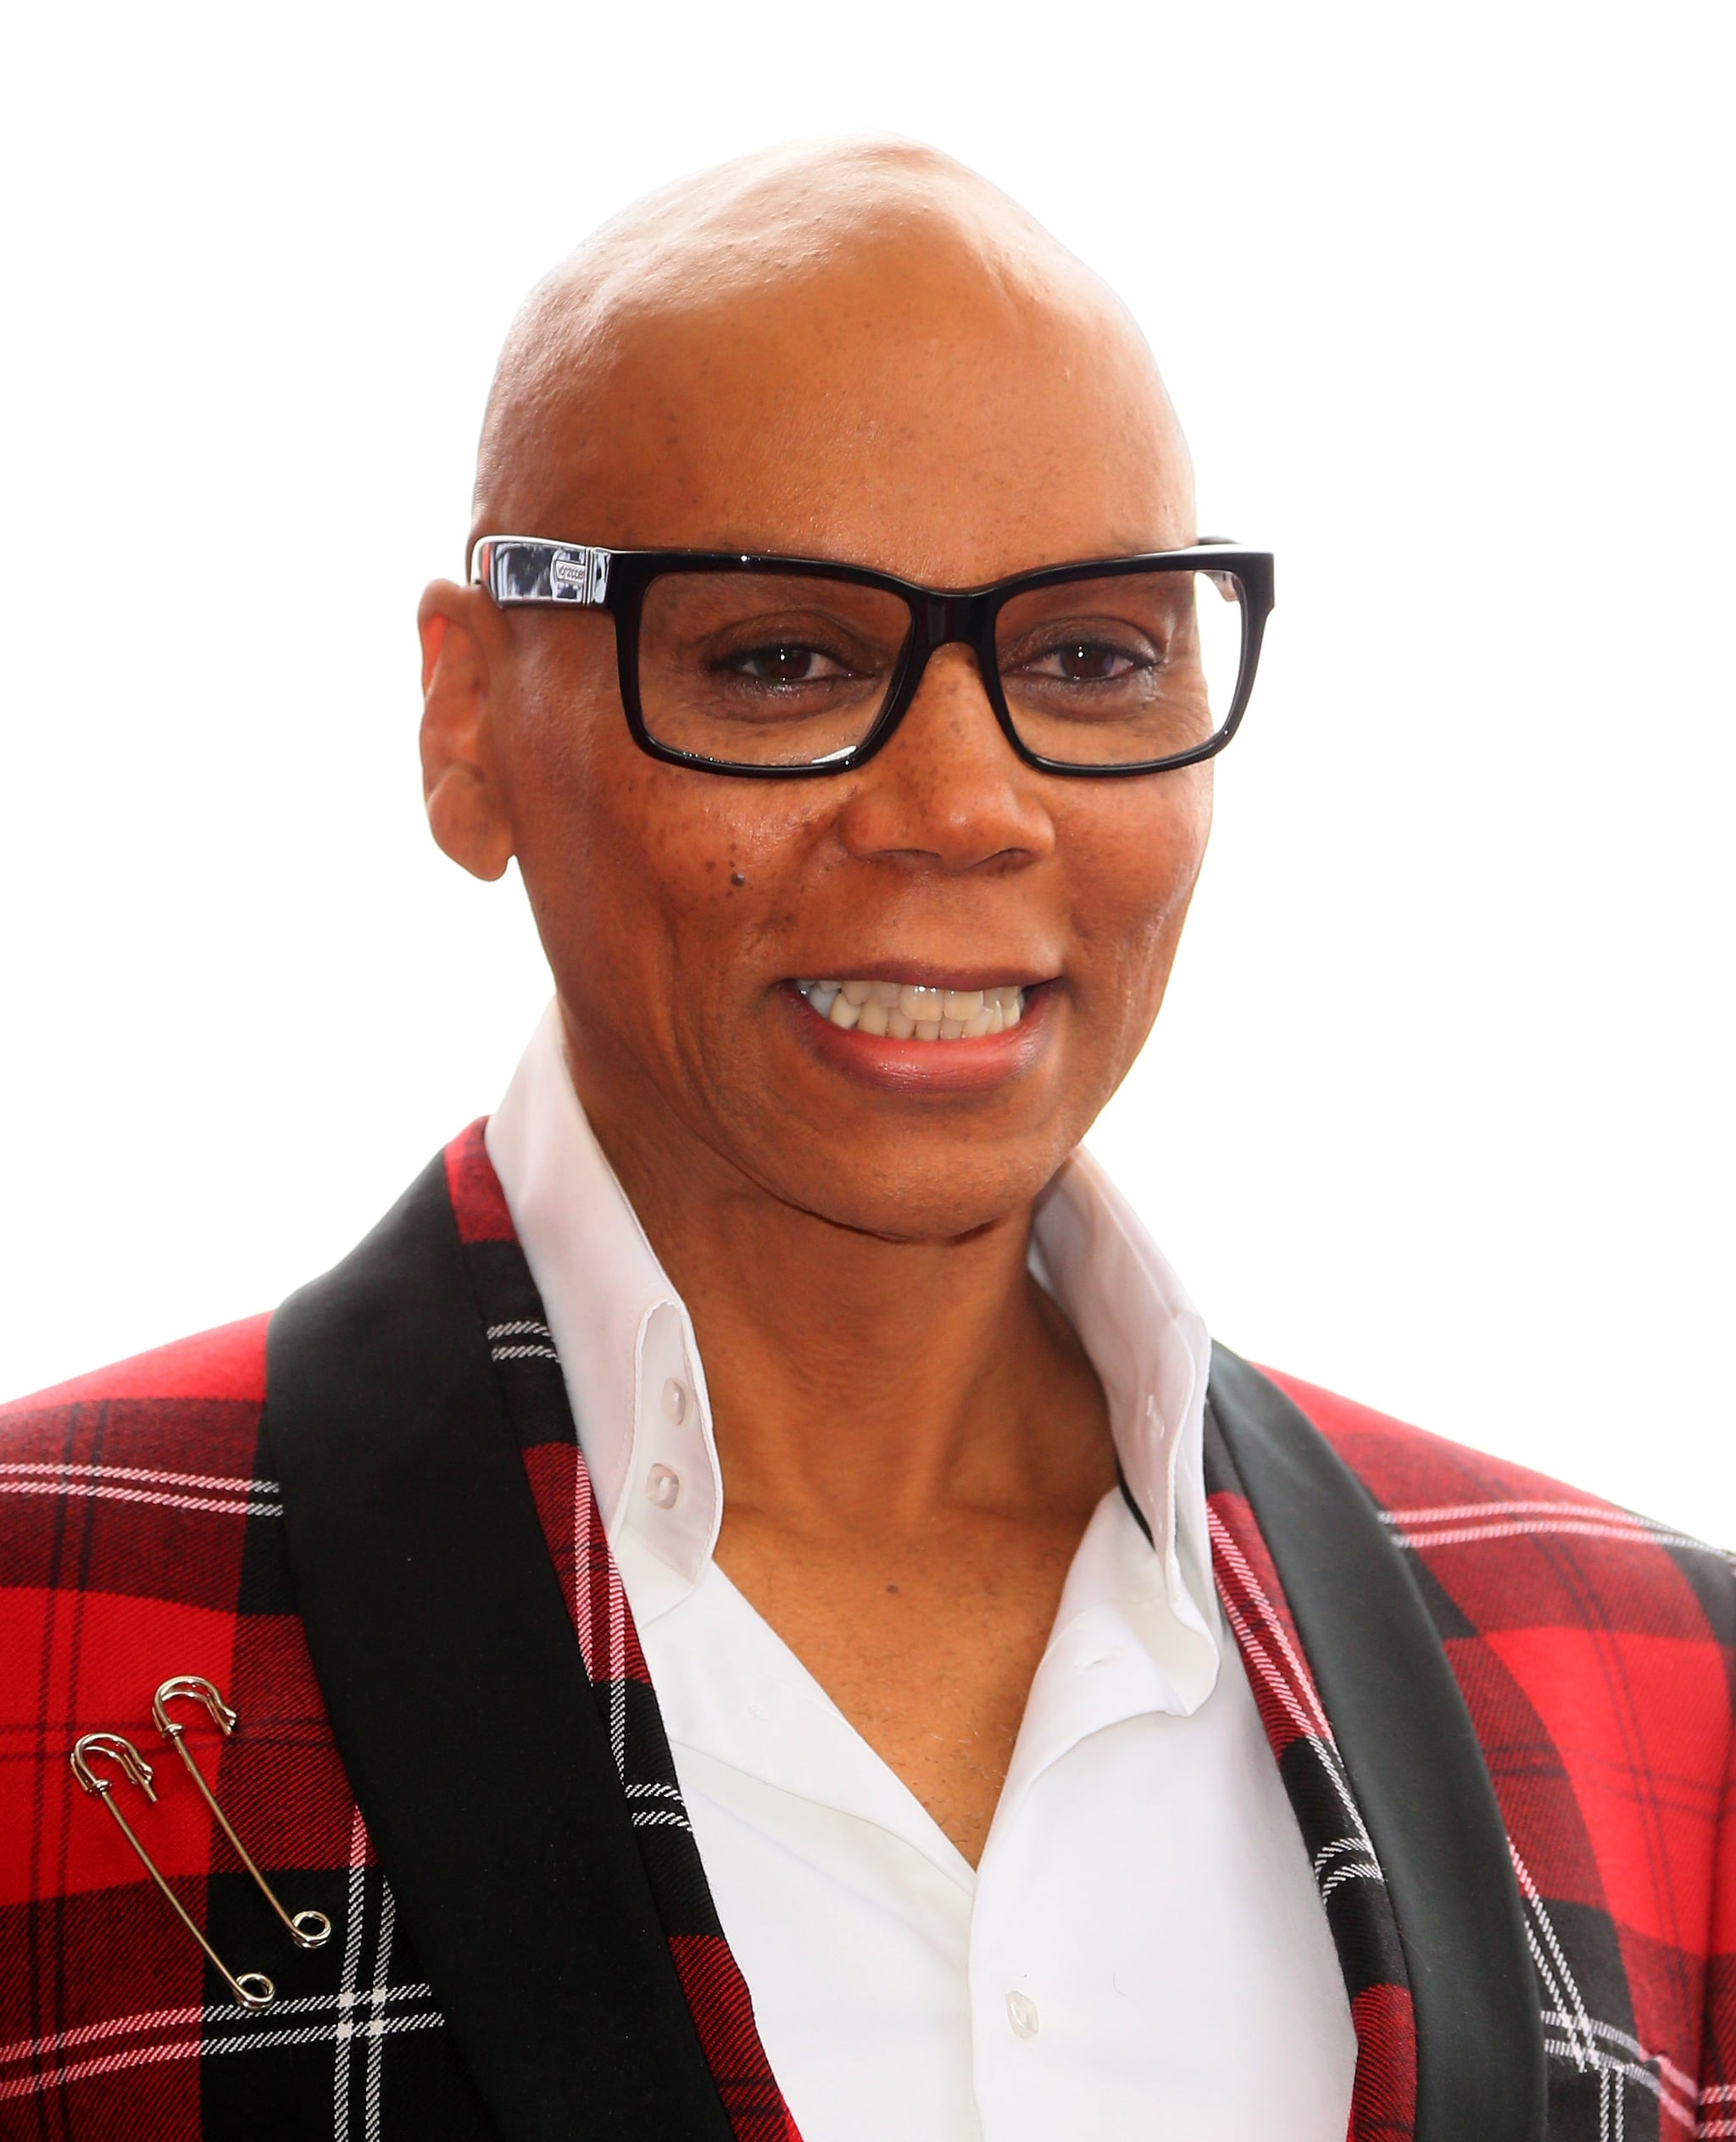 HOLLYWOOD, CA - MARCH 16: RuPaul attends his Star ceremony on The Hollywood Walk Of Fame on March 16, 2018 in Hollywood, California. (Photo by JB Lacroix/WireImage)